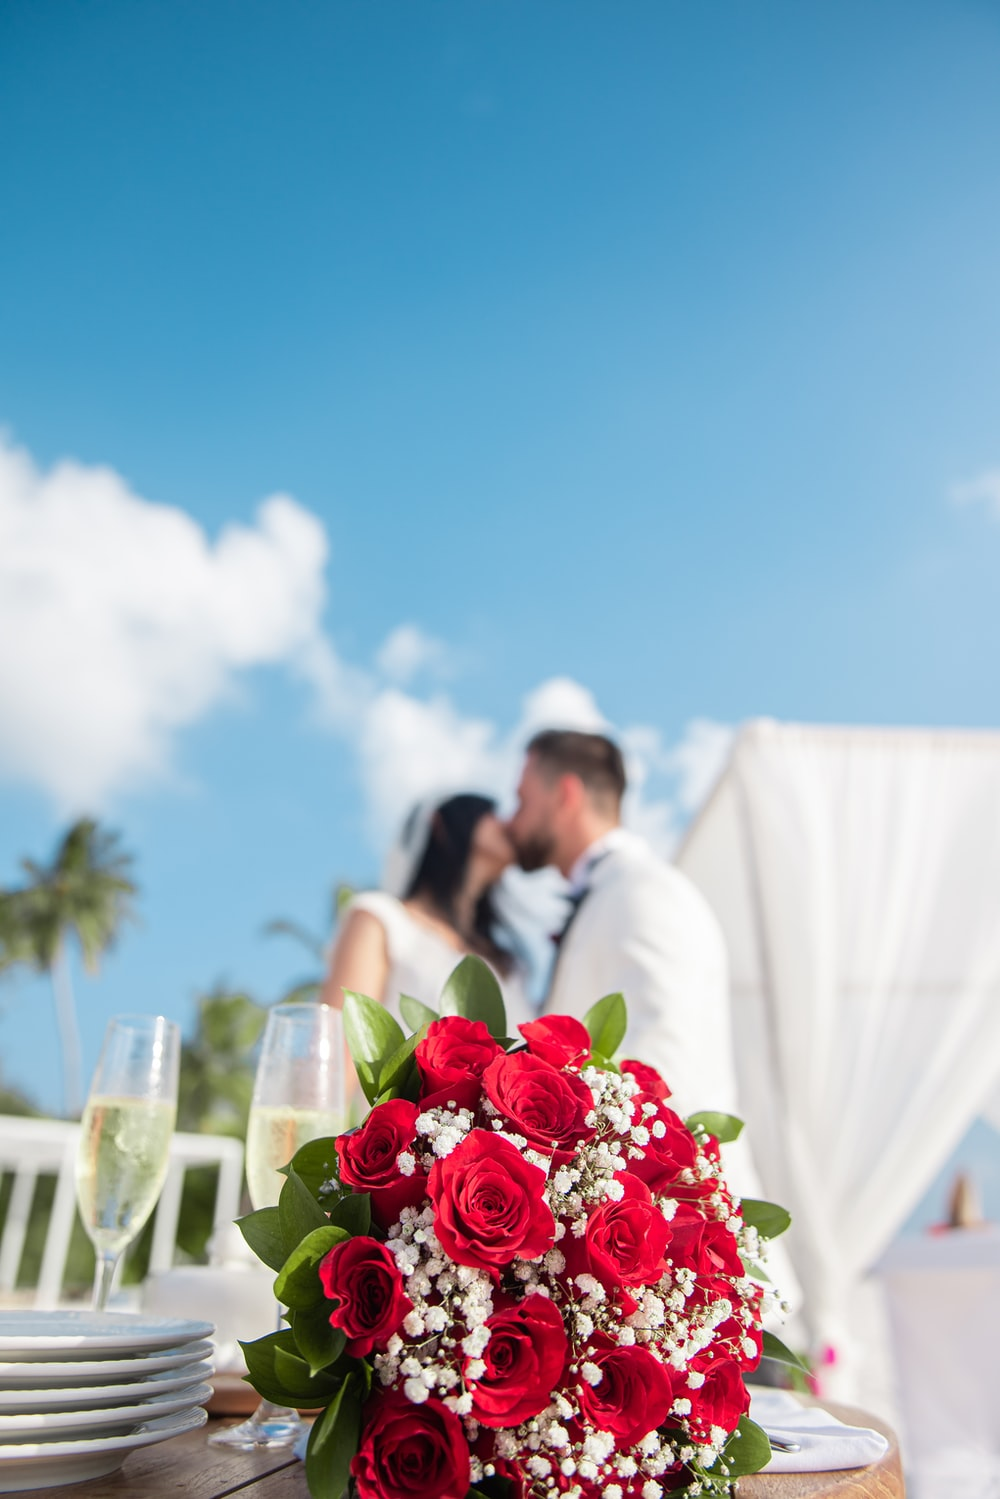 woman in white wedding gown holding bouquet of red roses